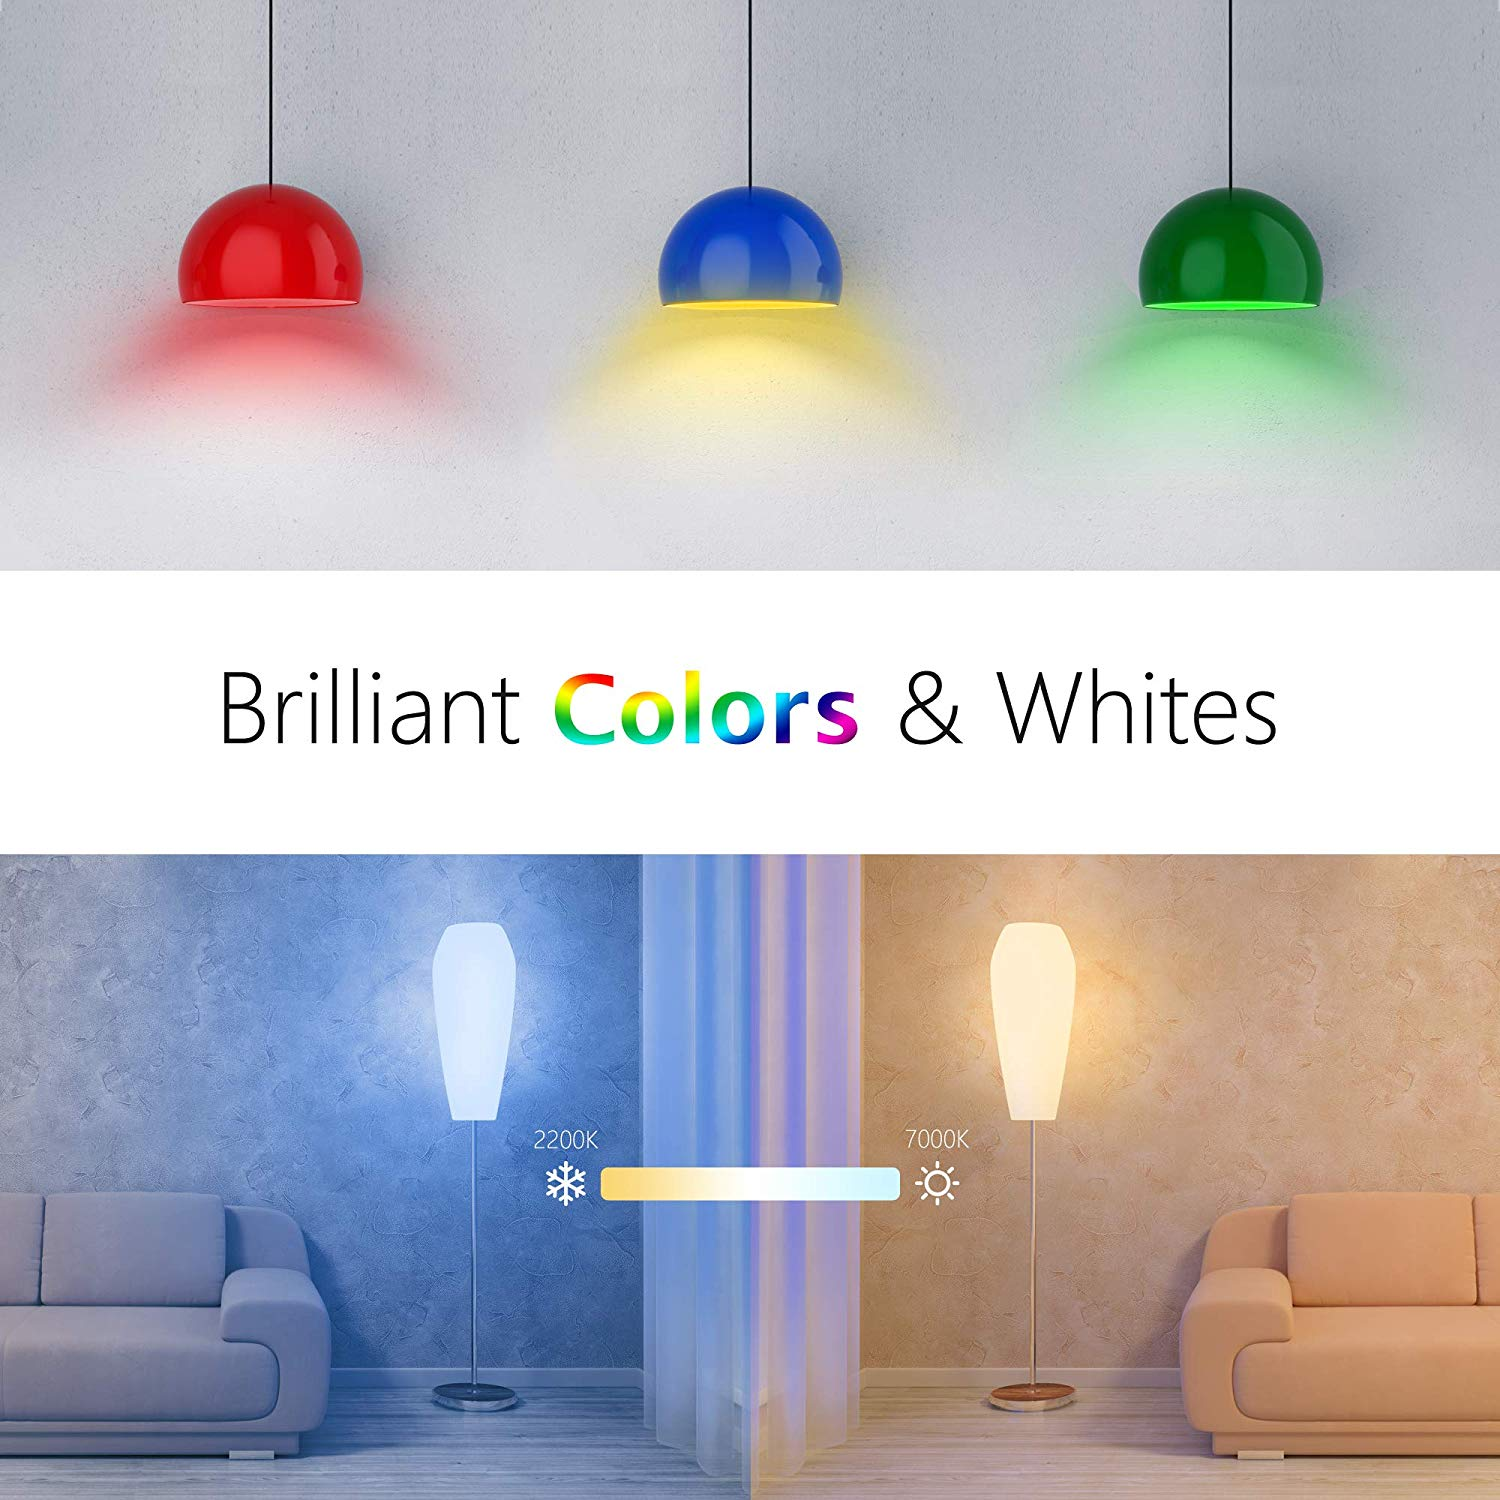 Умная лампа VOCOlinc Smart Light Bulb Color (L3)